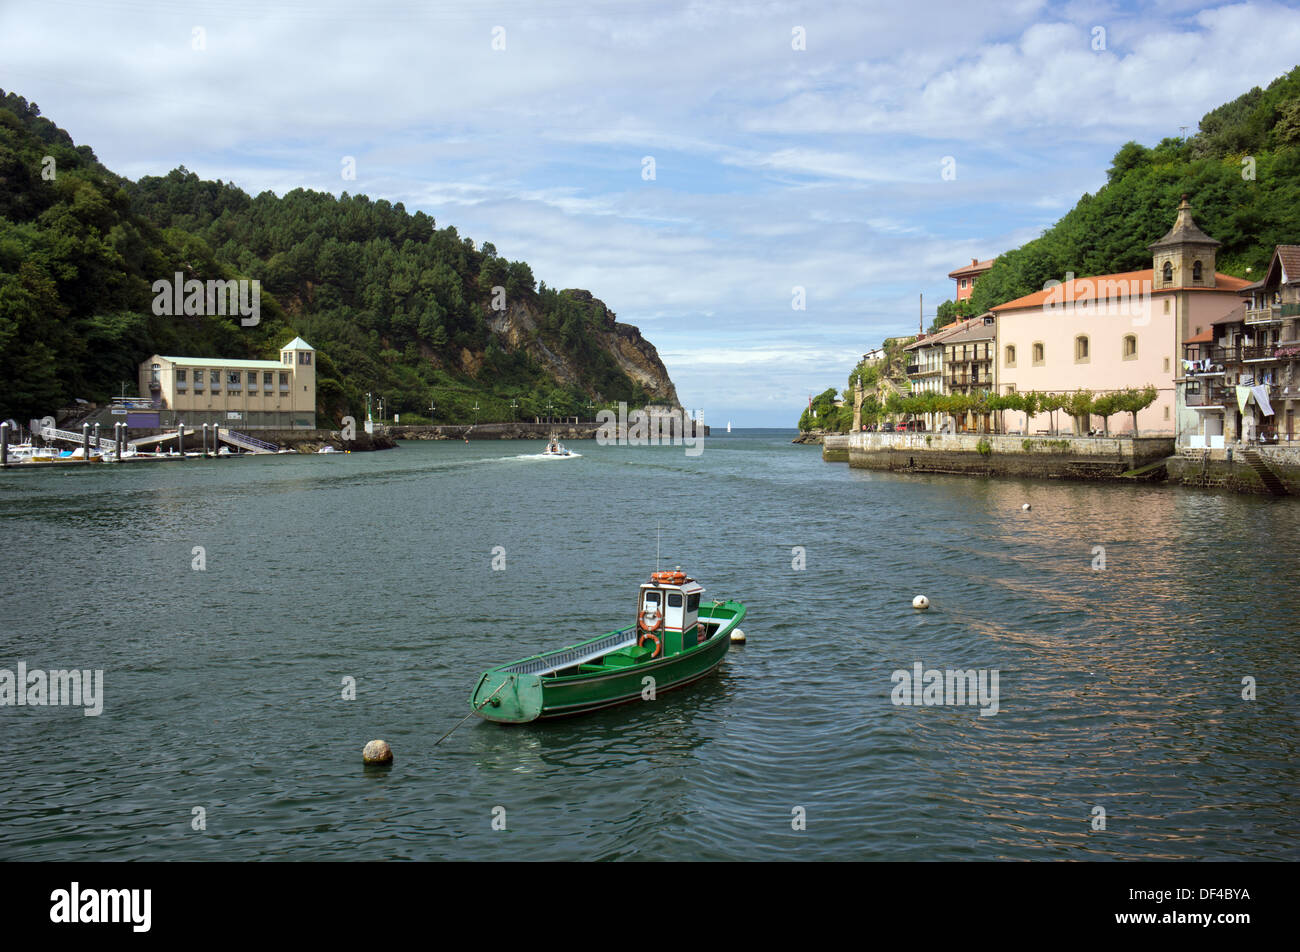 Pasaia, Basque Community, Spain, View of the fishing and touristical town of Pasaia (Pasajes, in Spanish) on the Cantabric Sea. - Stock Image